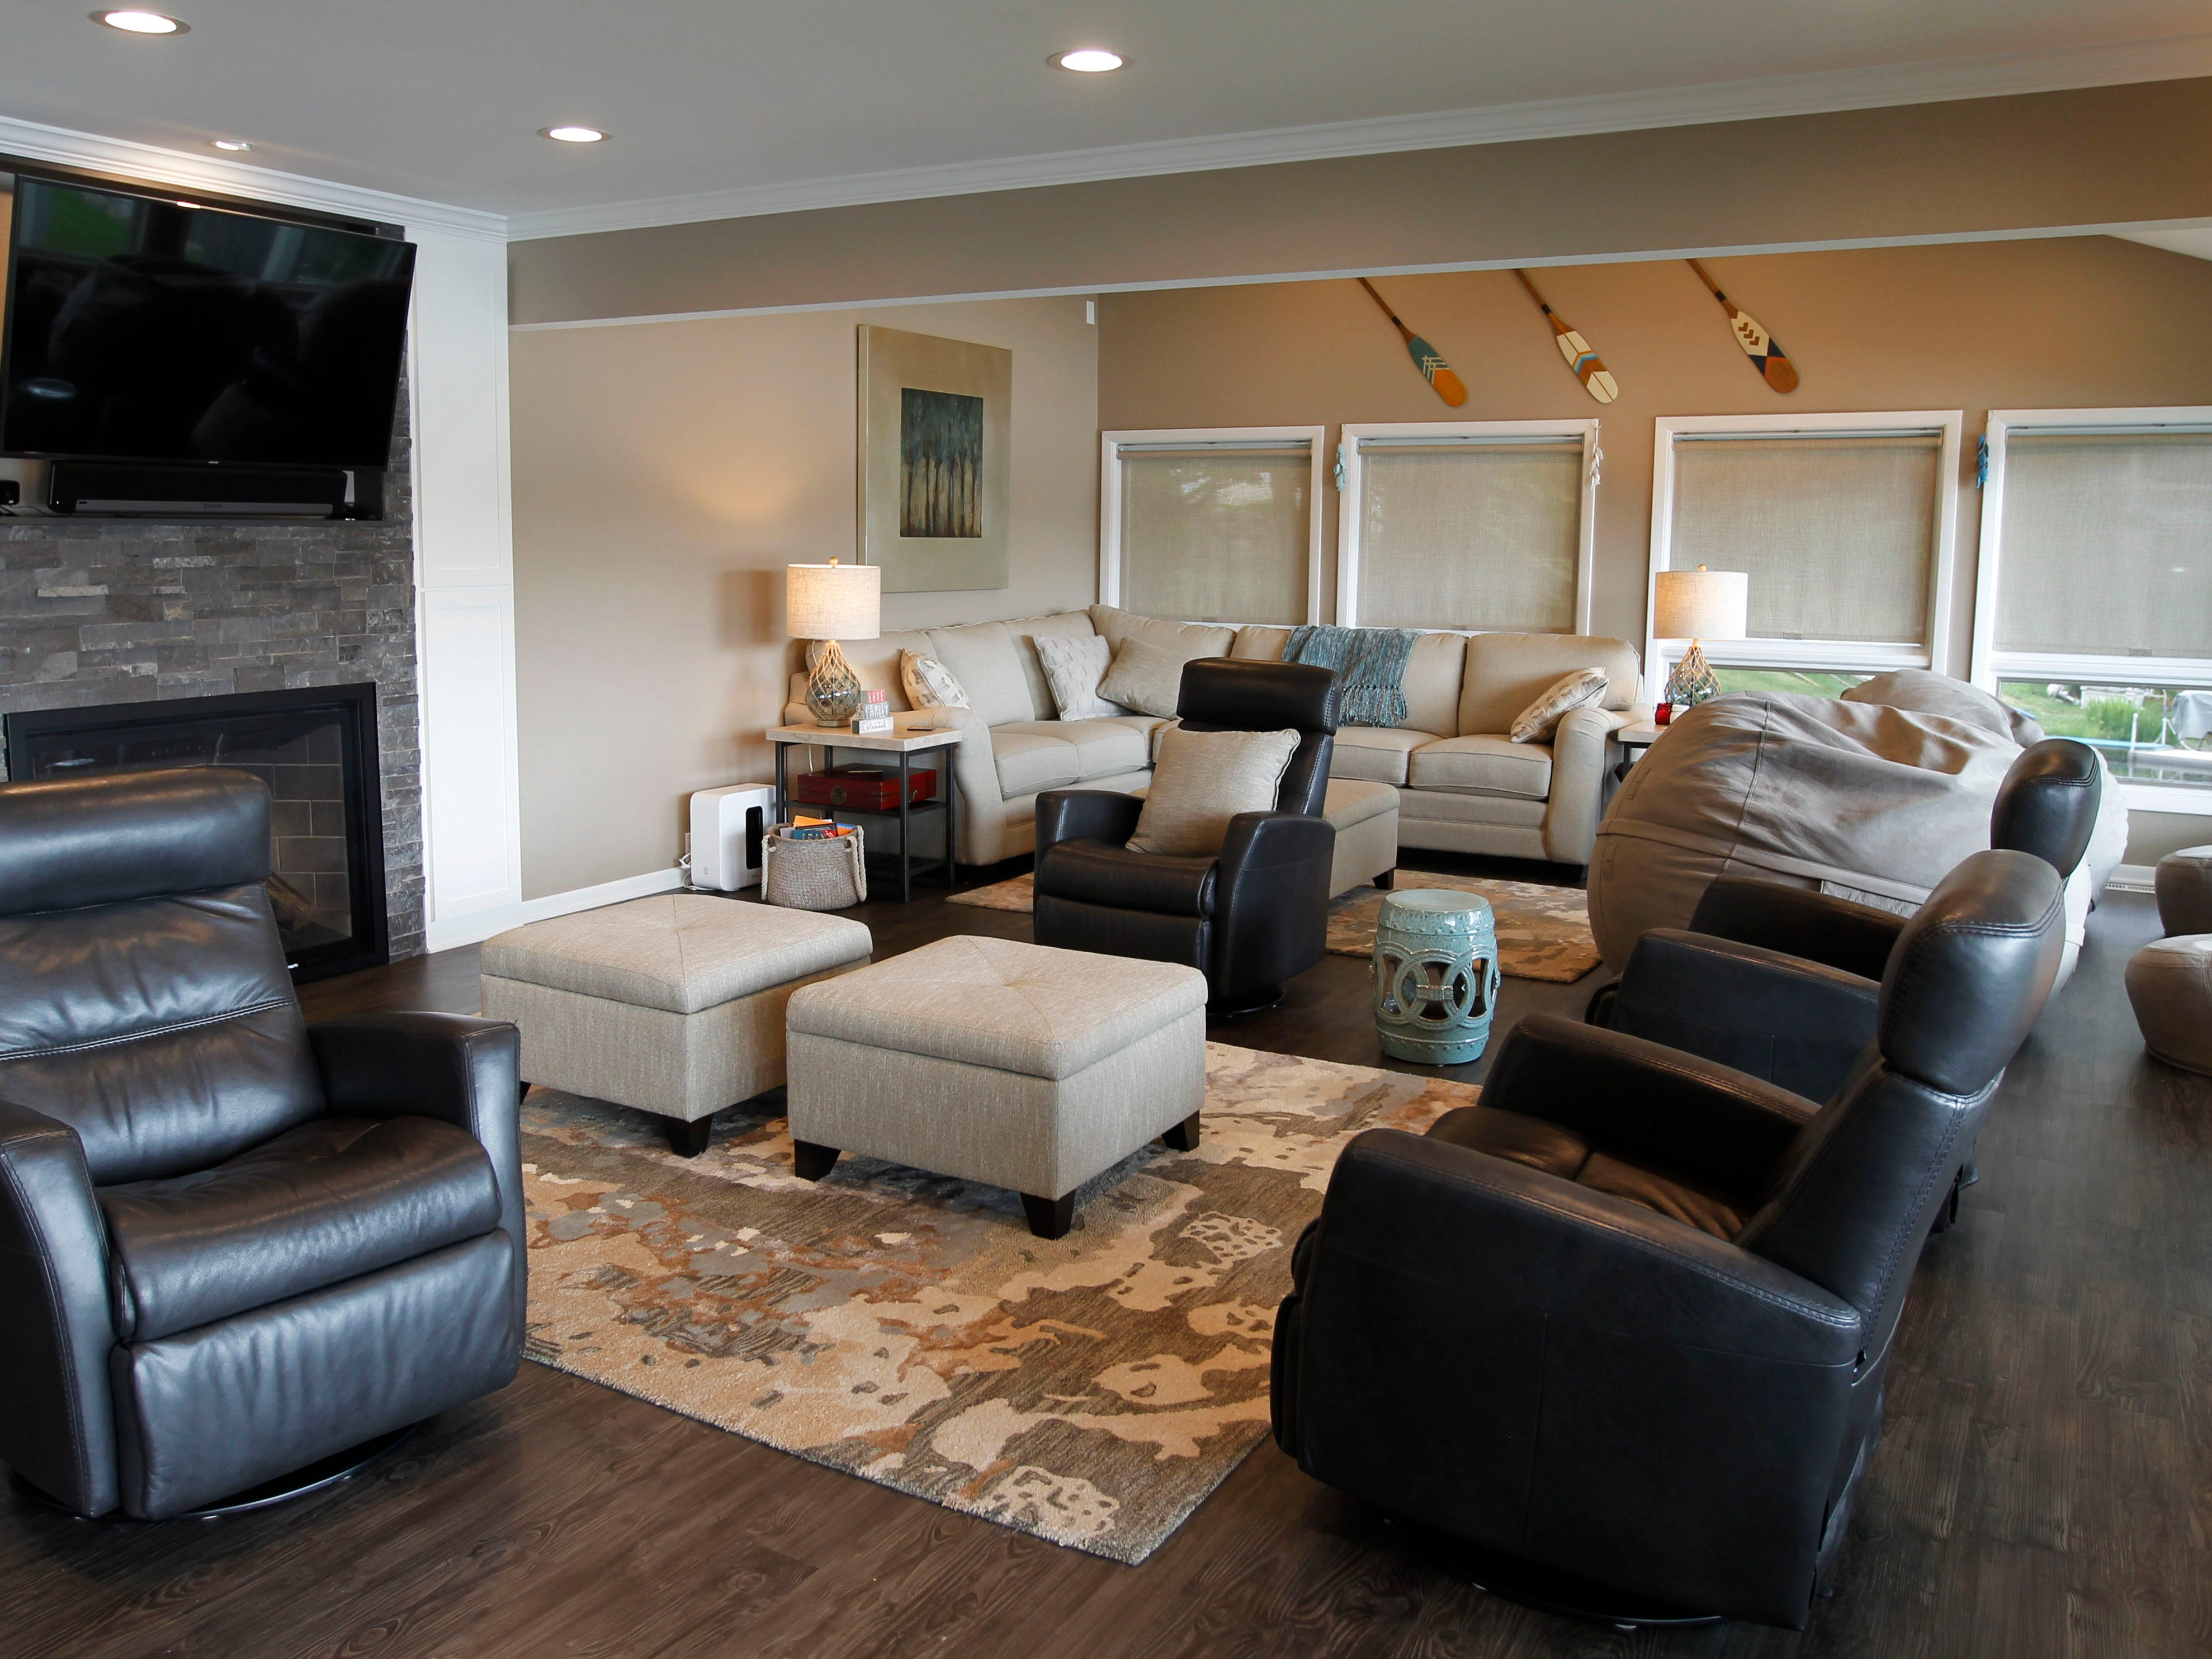 The Phillips family room in Okauchee is open with lots of cozy seating for viewing the inlet bay within Okauchee Lake.